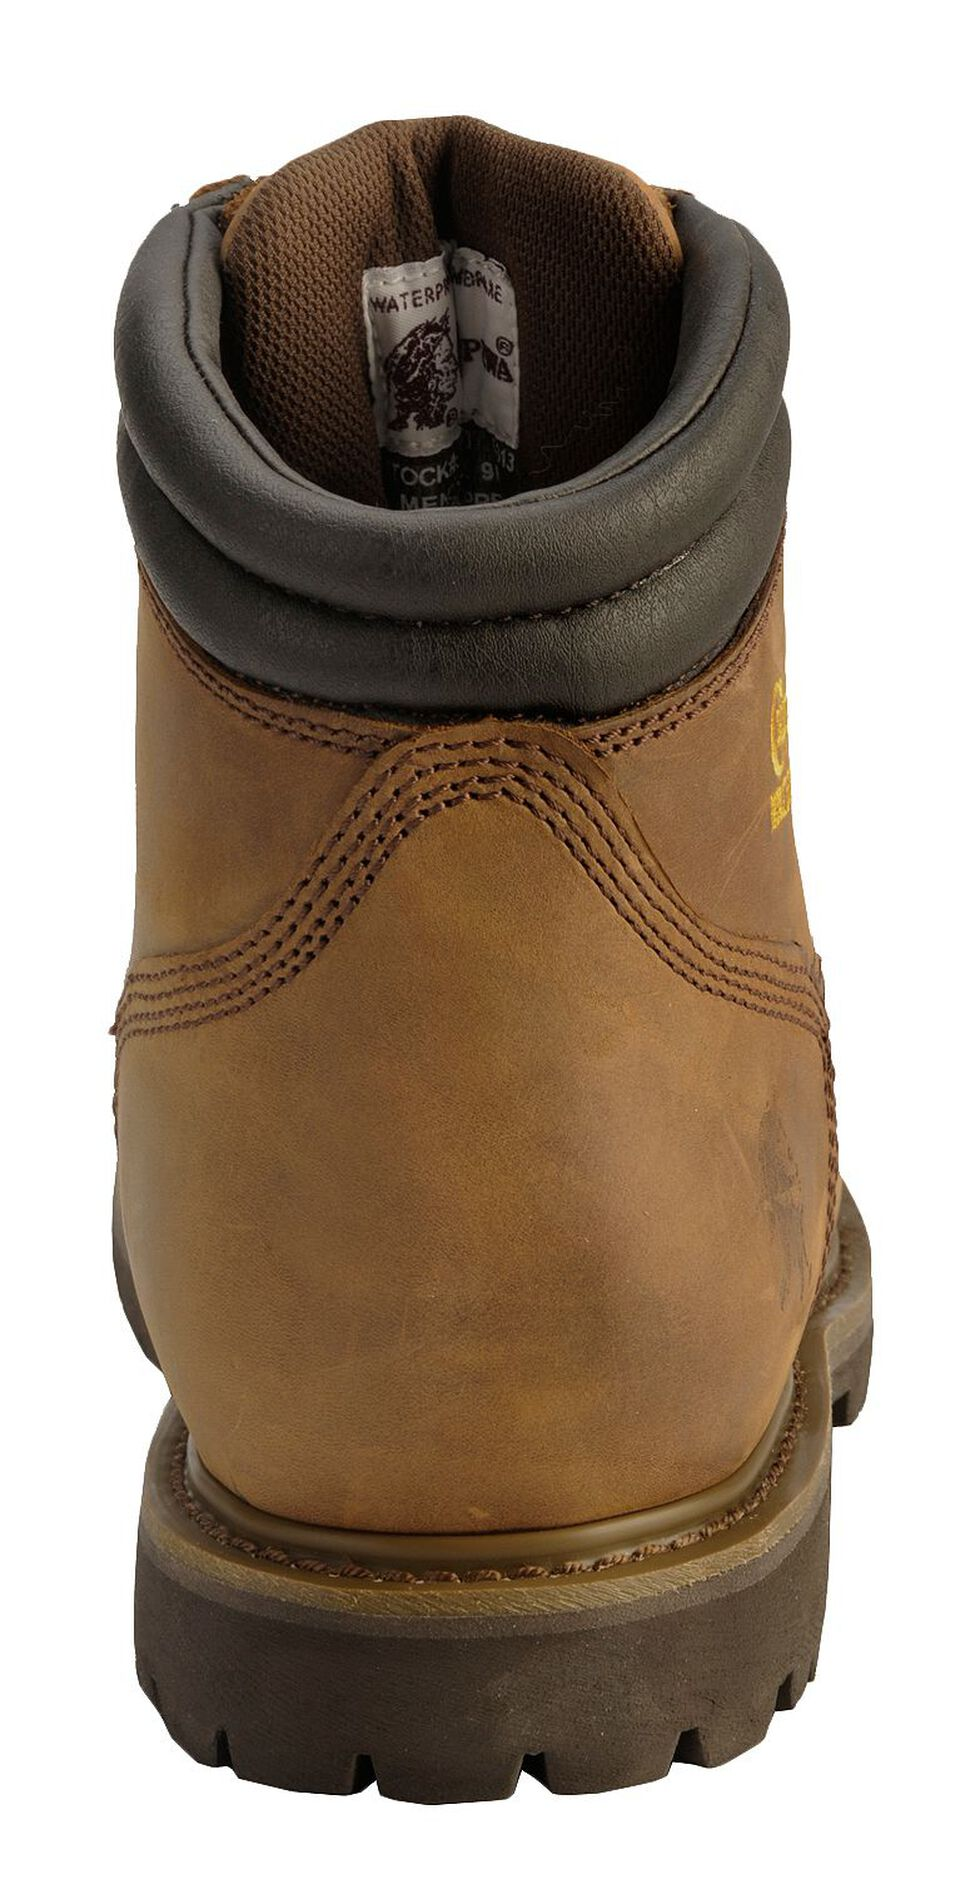 """Chippewa IQ Insulated & Waterproof 6"""" Lace-Up Work Boots - Round Toe, Bark, hi-res"""